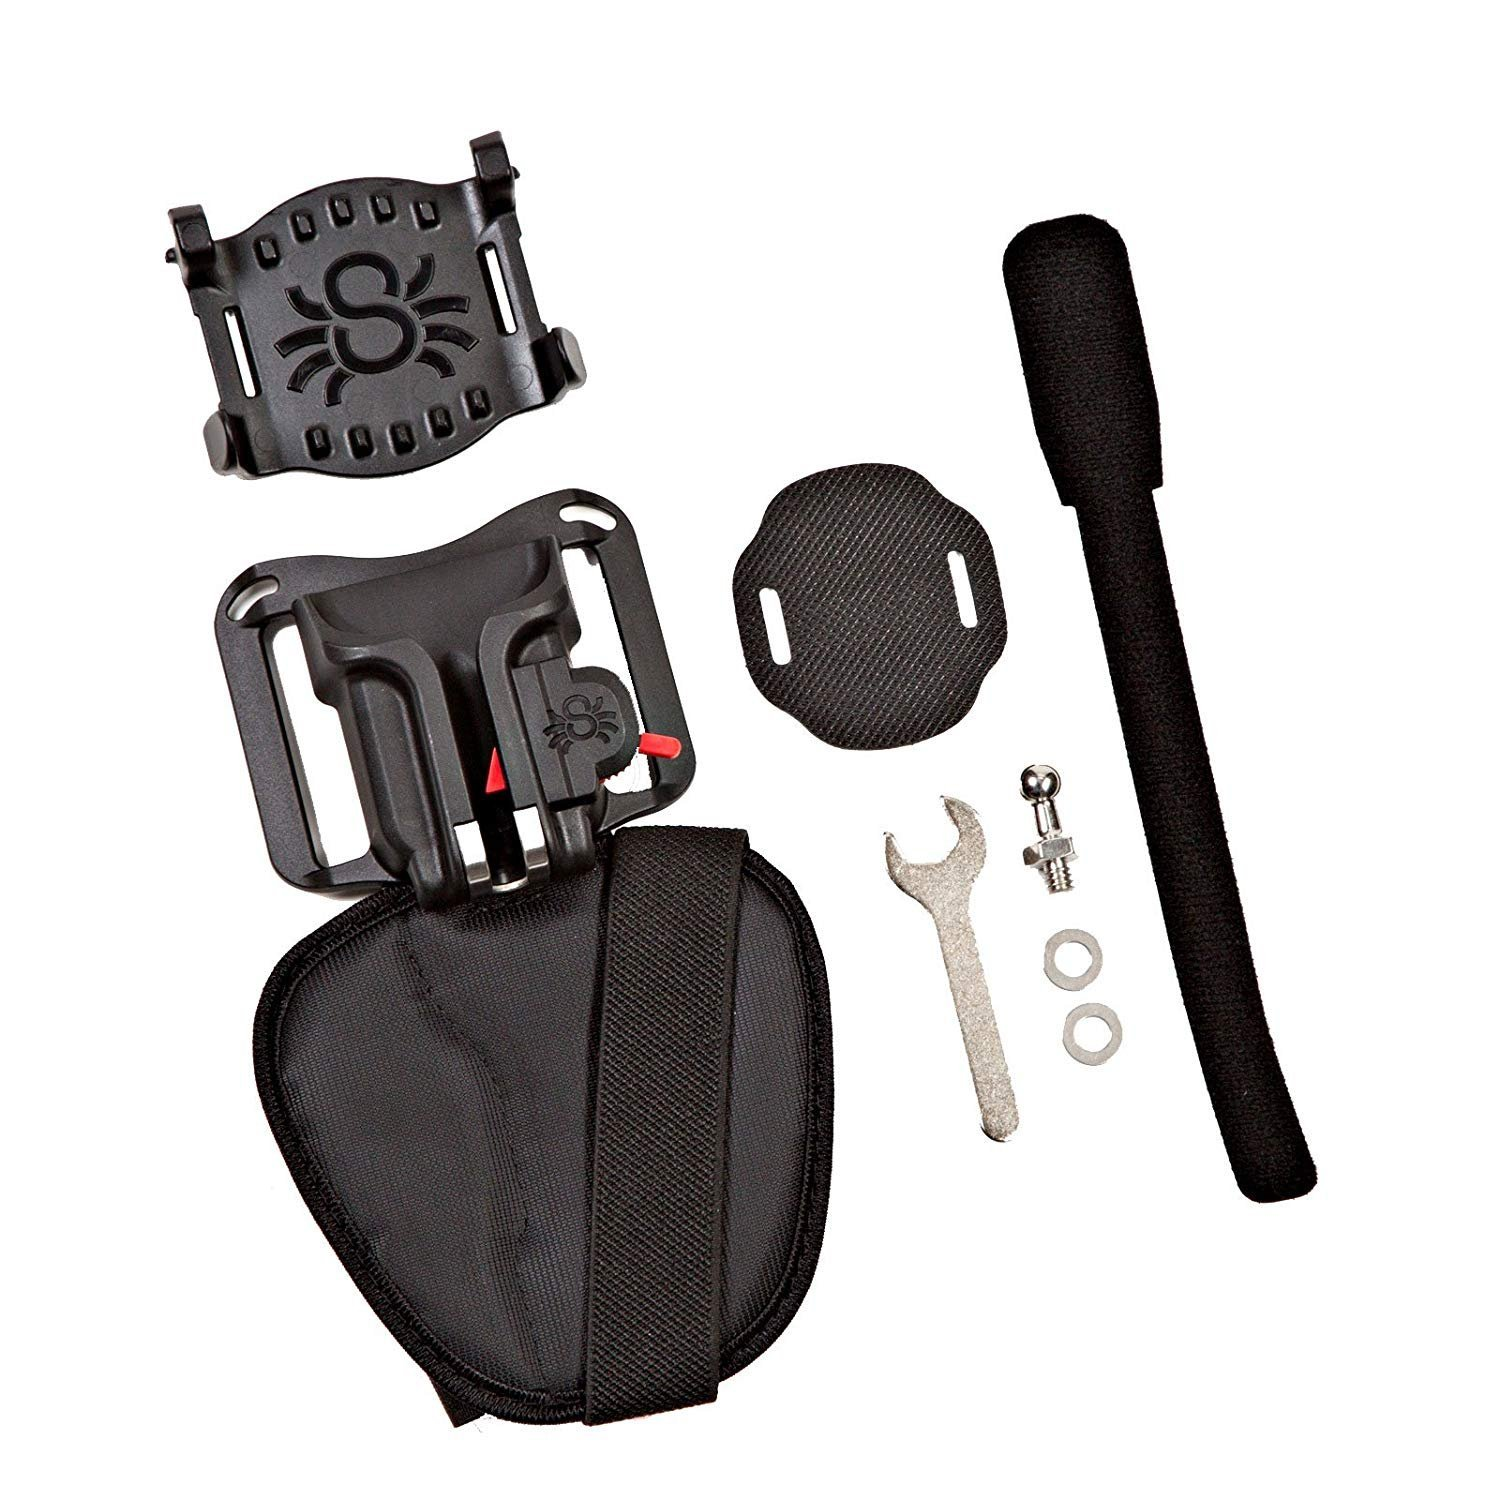 Spider Holster Black Widow Backpacker Kit by Spider